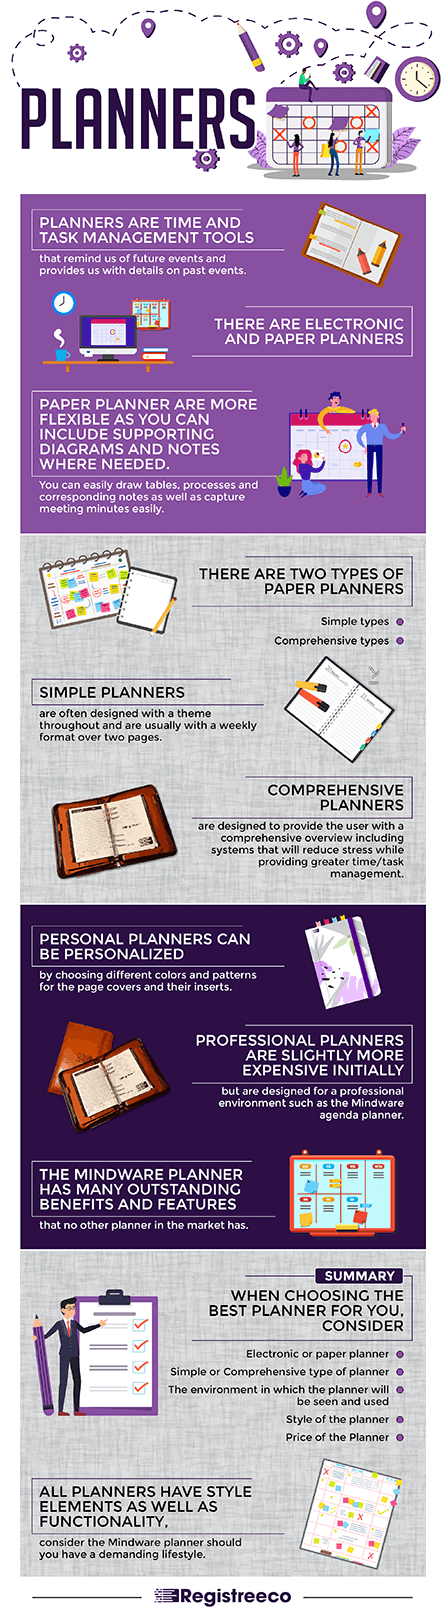 Infographic describing the different types of planners and the considerations required to choose the right one for you.